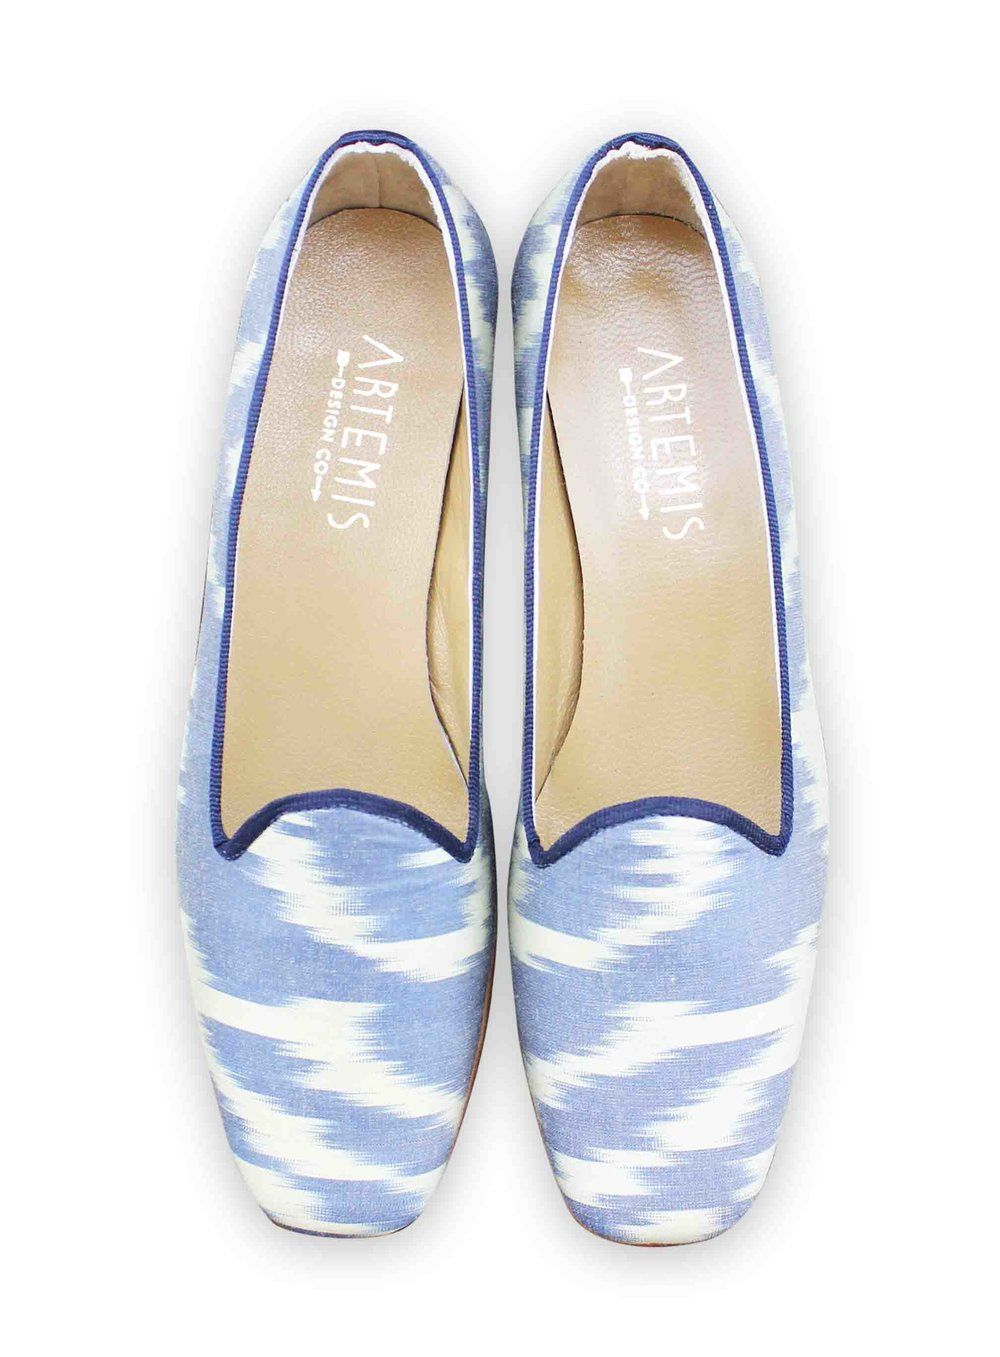 artisans handmade These raw by silk are loafers ultra luxurious ikat OqzCORZ